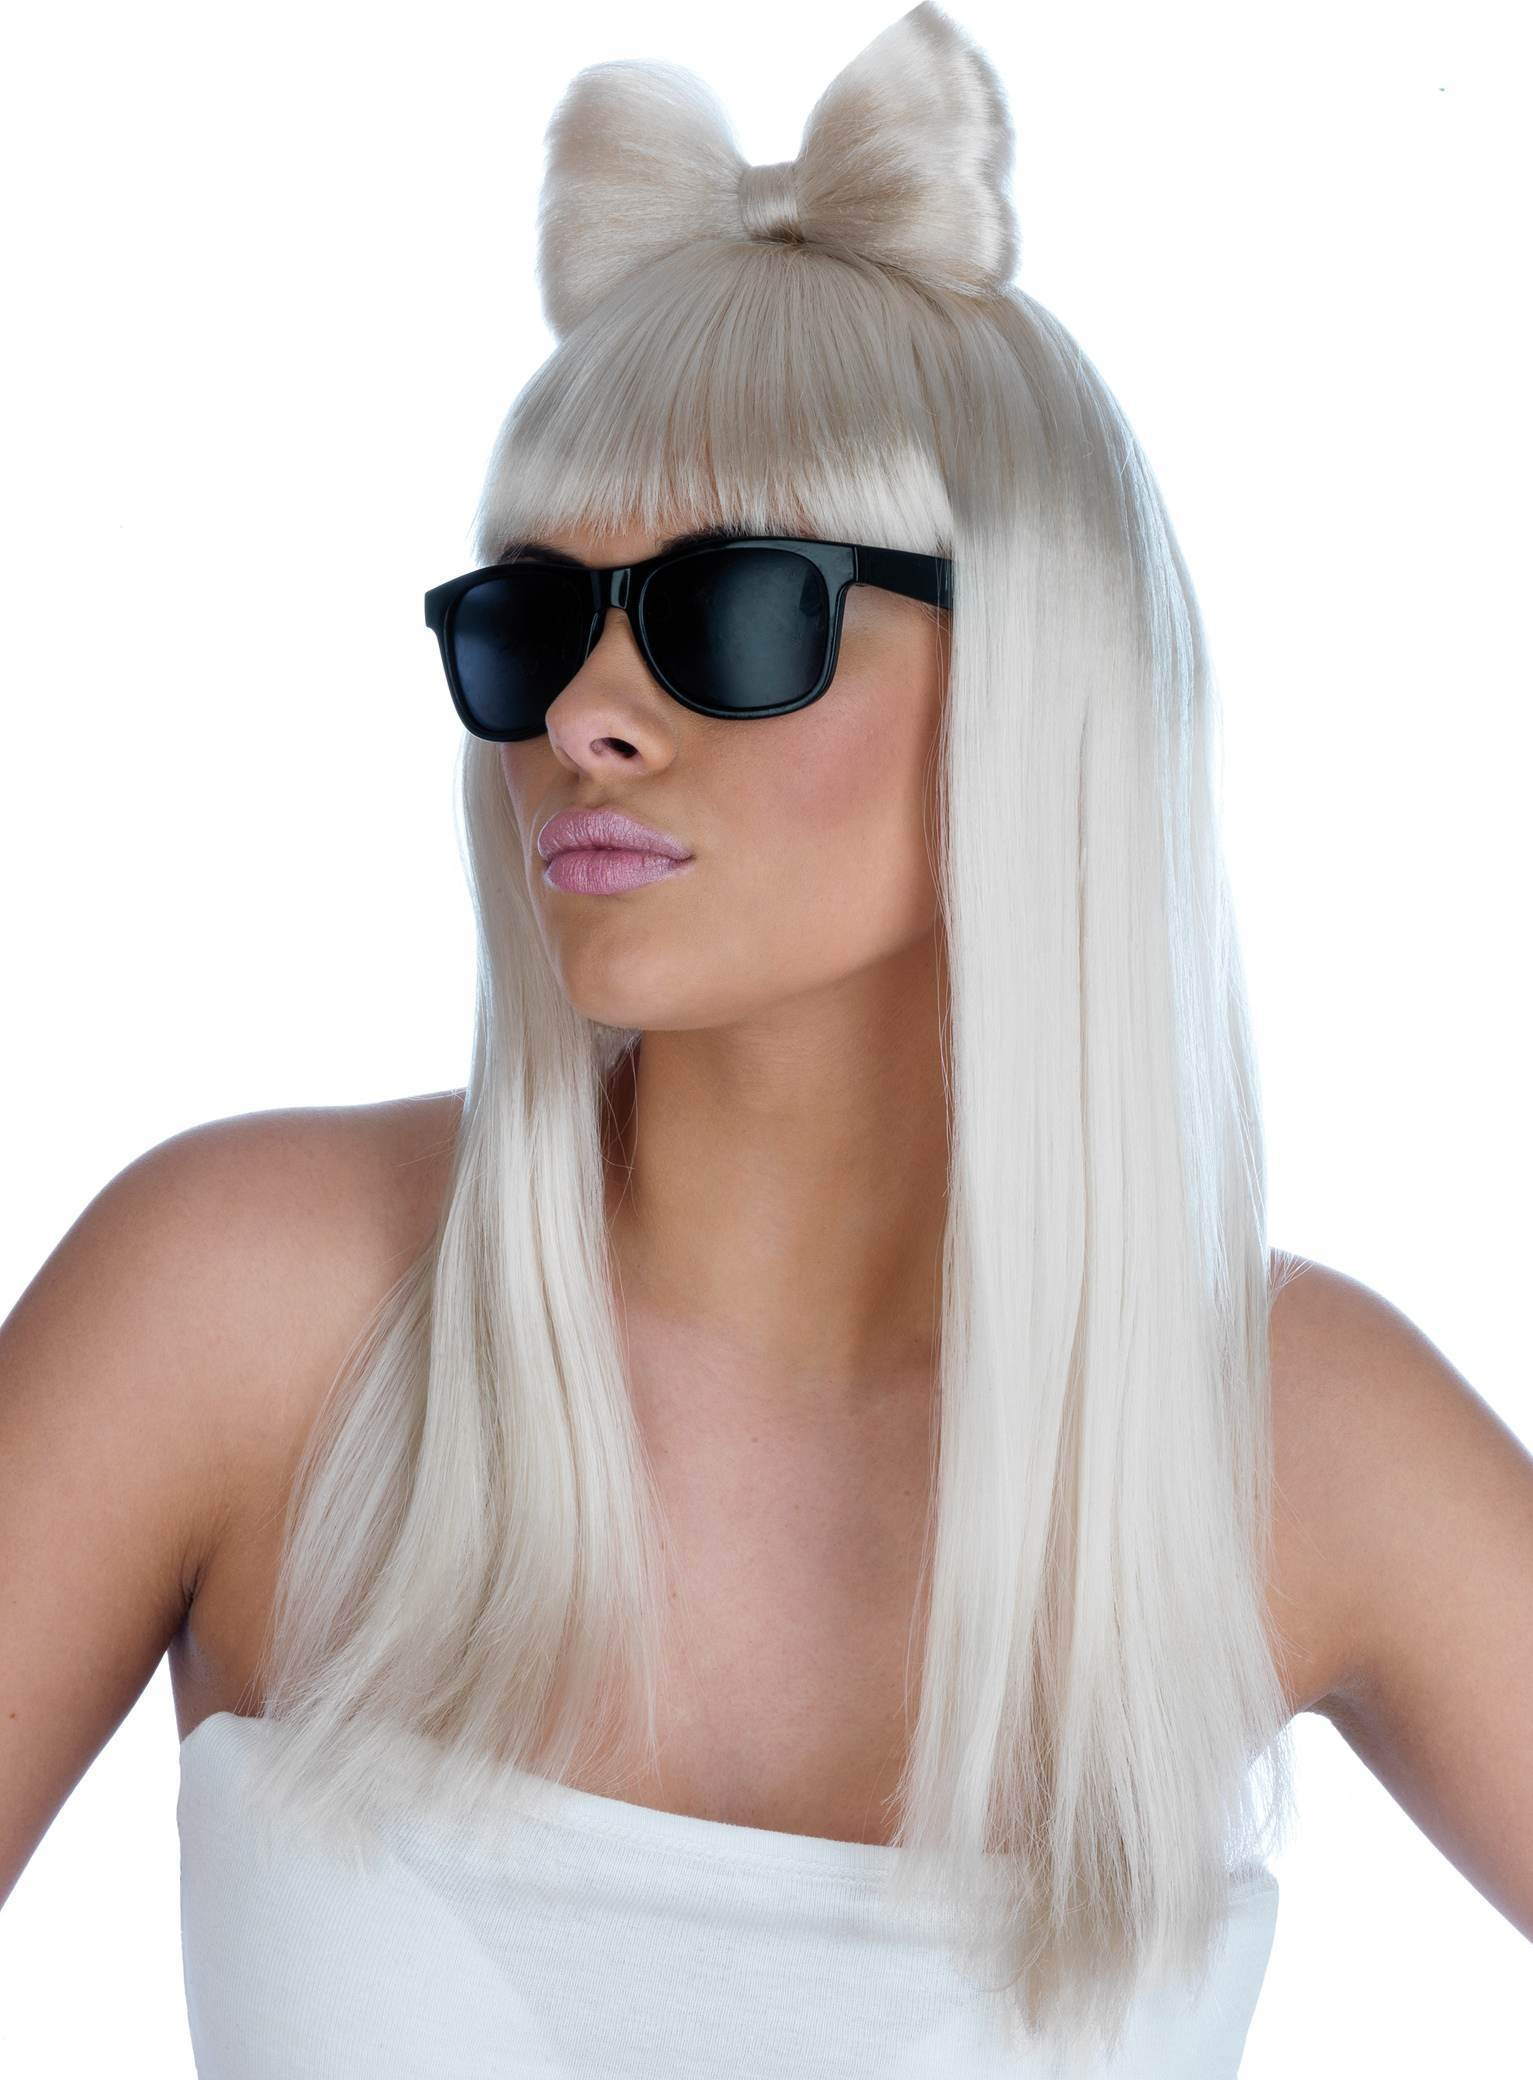 Ga Gablonde Pop Diva Wig And Glasses ( 200G) One Size (Music)